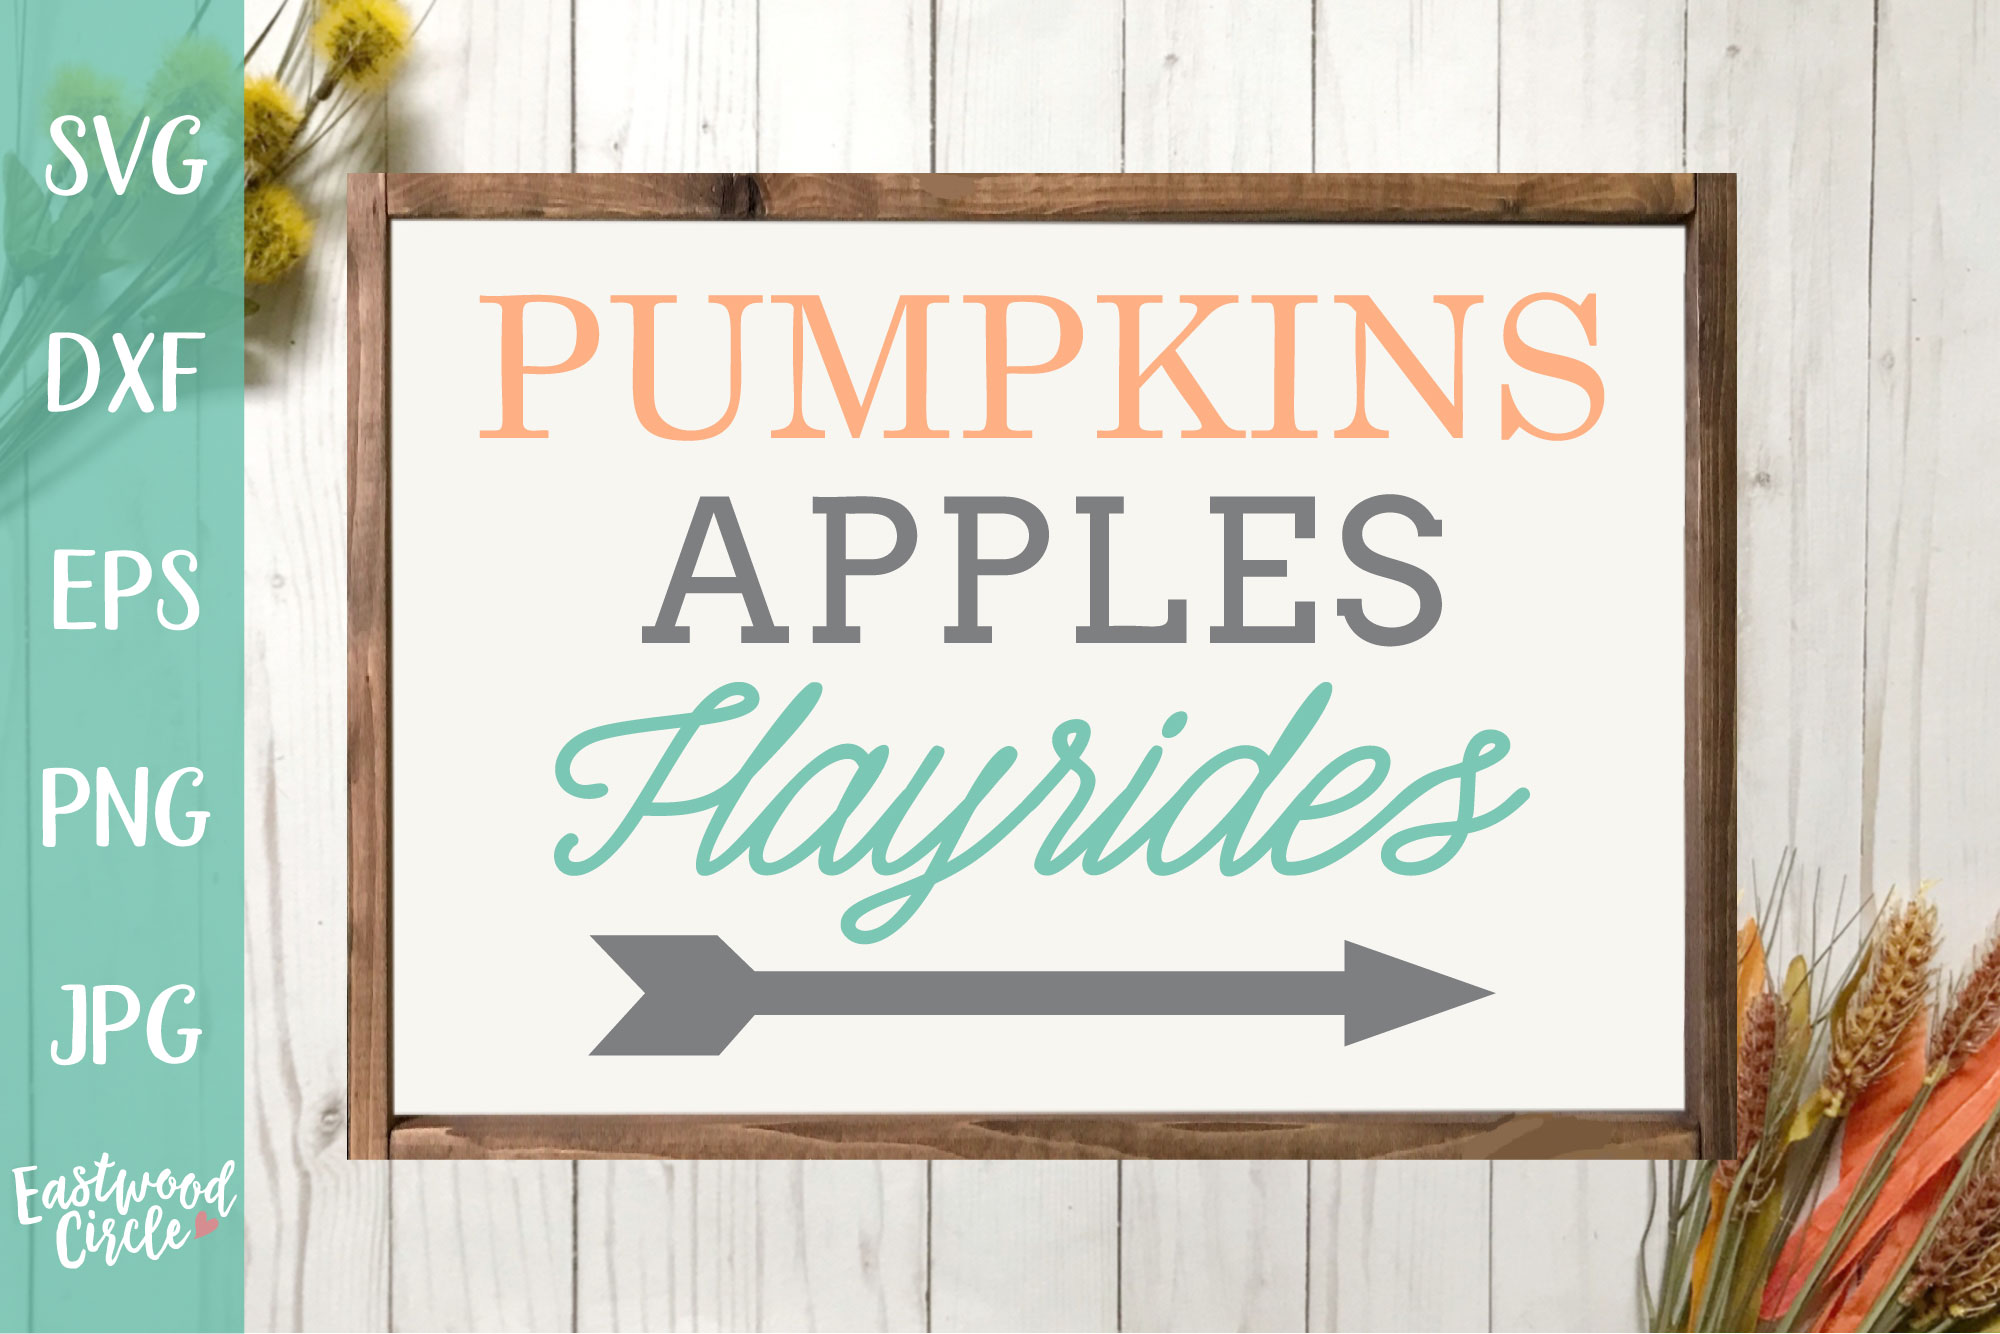 Pumpkins Apples Hayrides - Fall SVG File for Signs example image 1